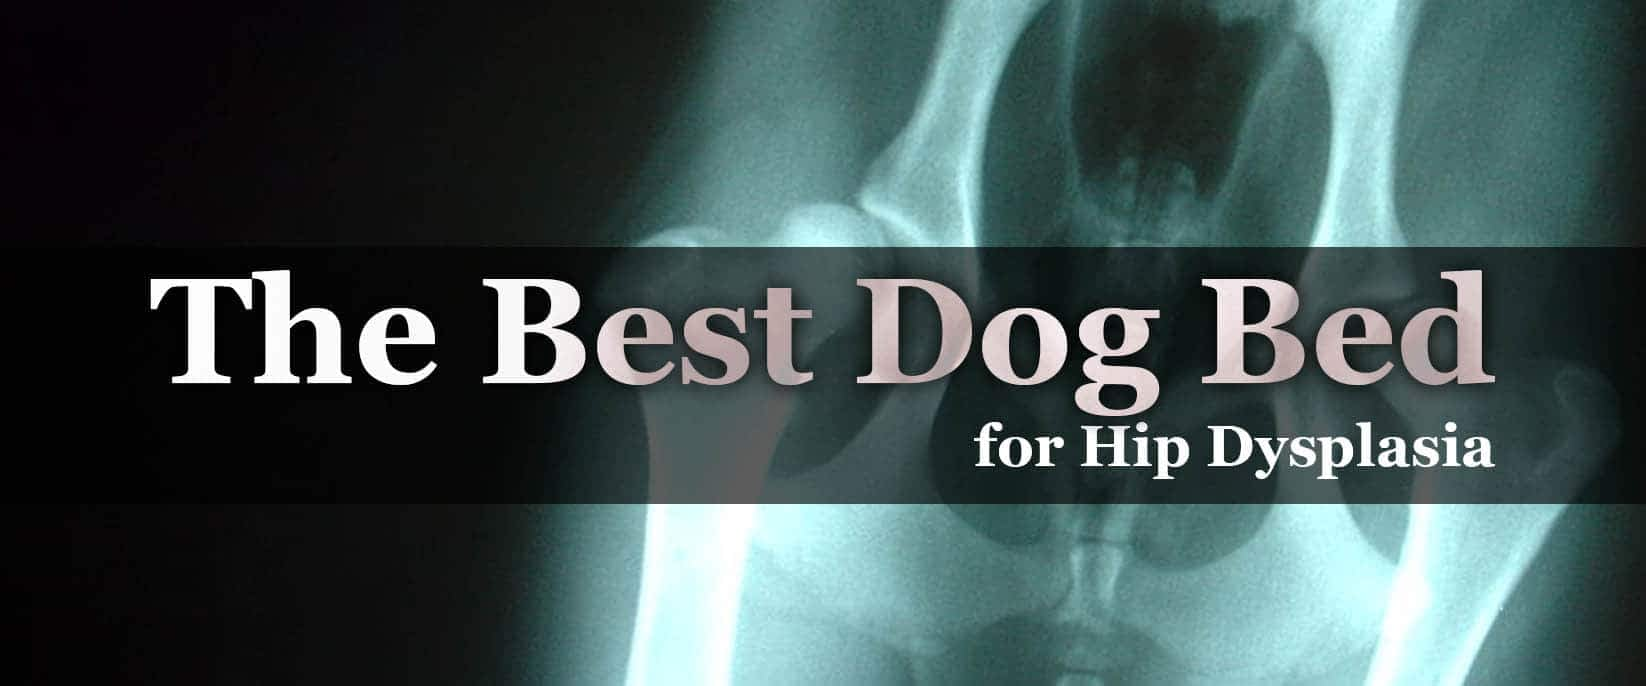 The Best Dog Bed for Hip Dysplasia